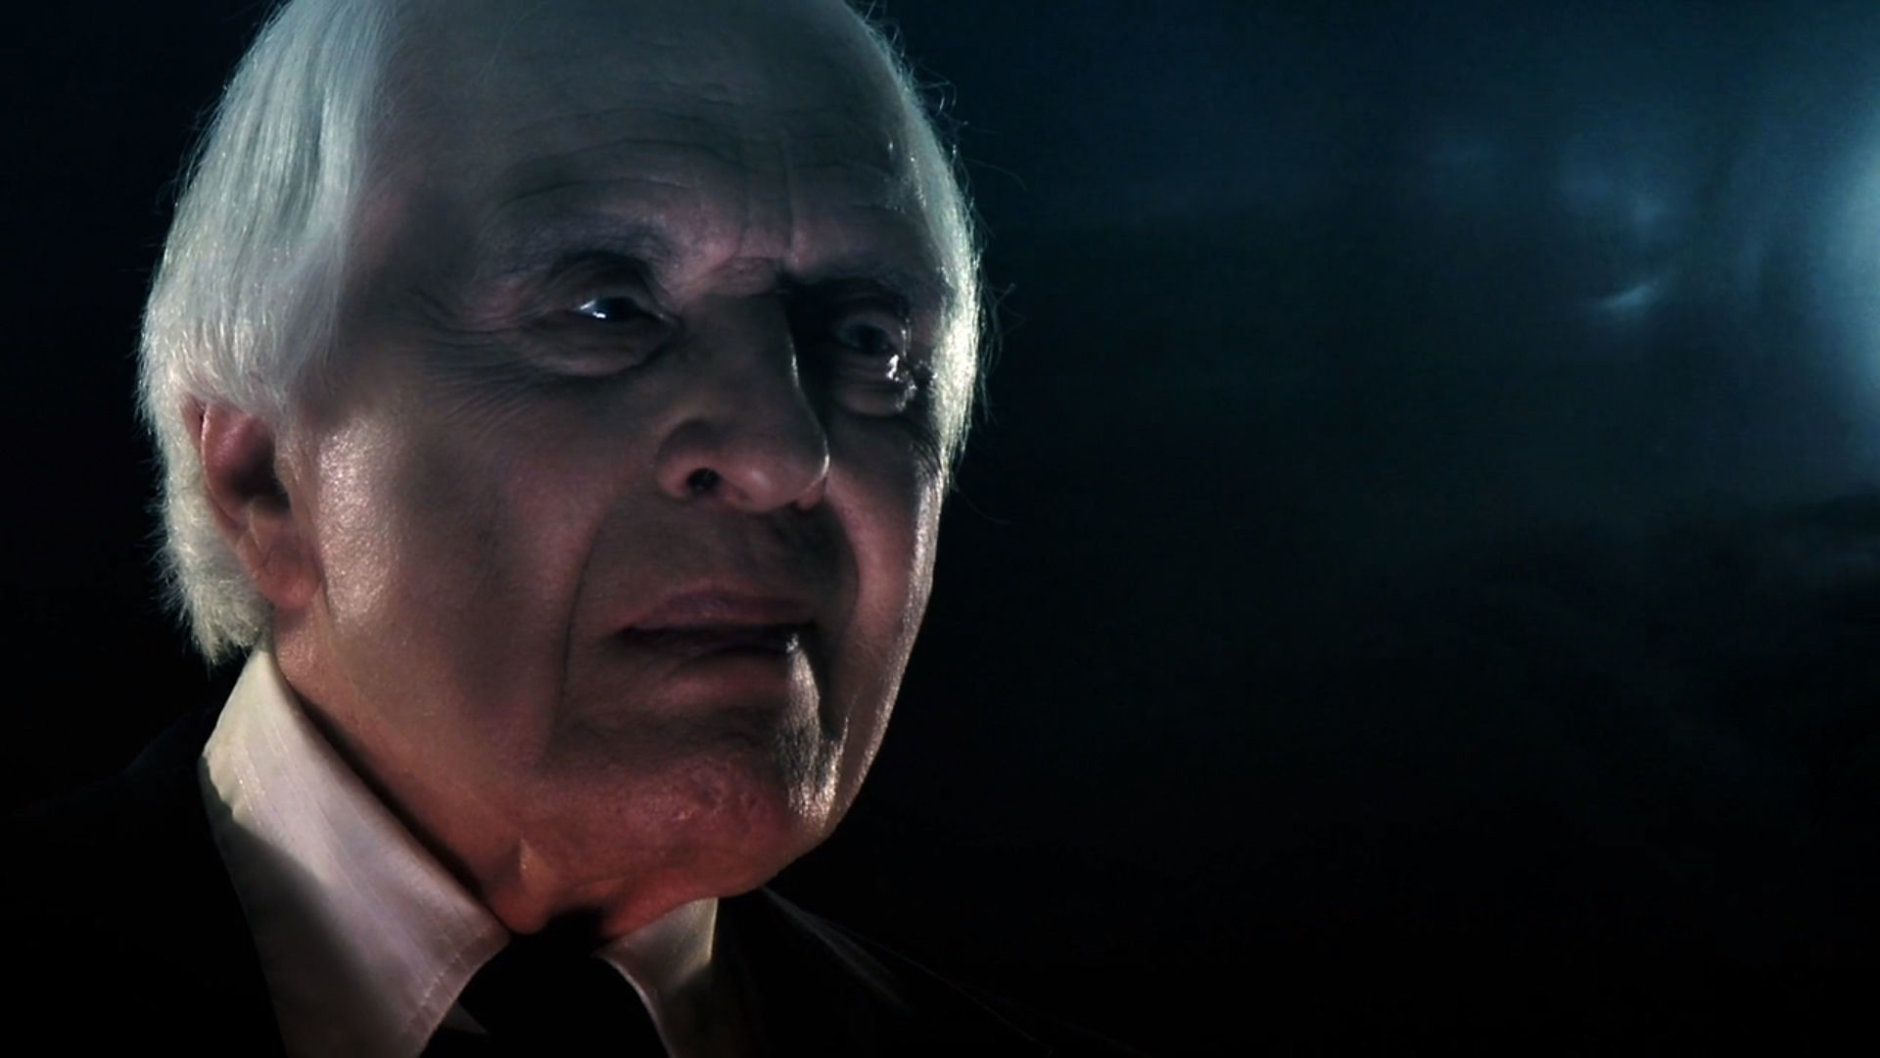 """Phantasm: Ravager"" was Angus Scrimm's final appearance as The Tall Man. He died Jan. 9, 2016. (Courtesy Silver Sphere Productions)"